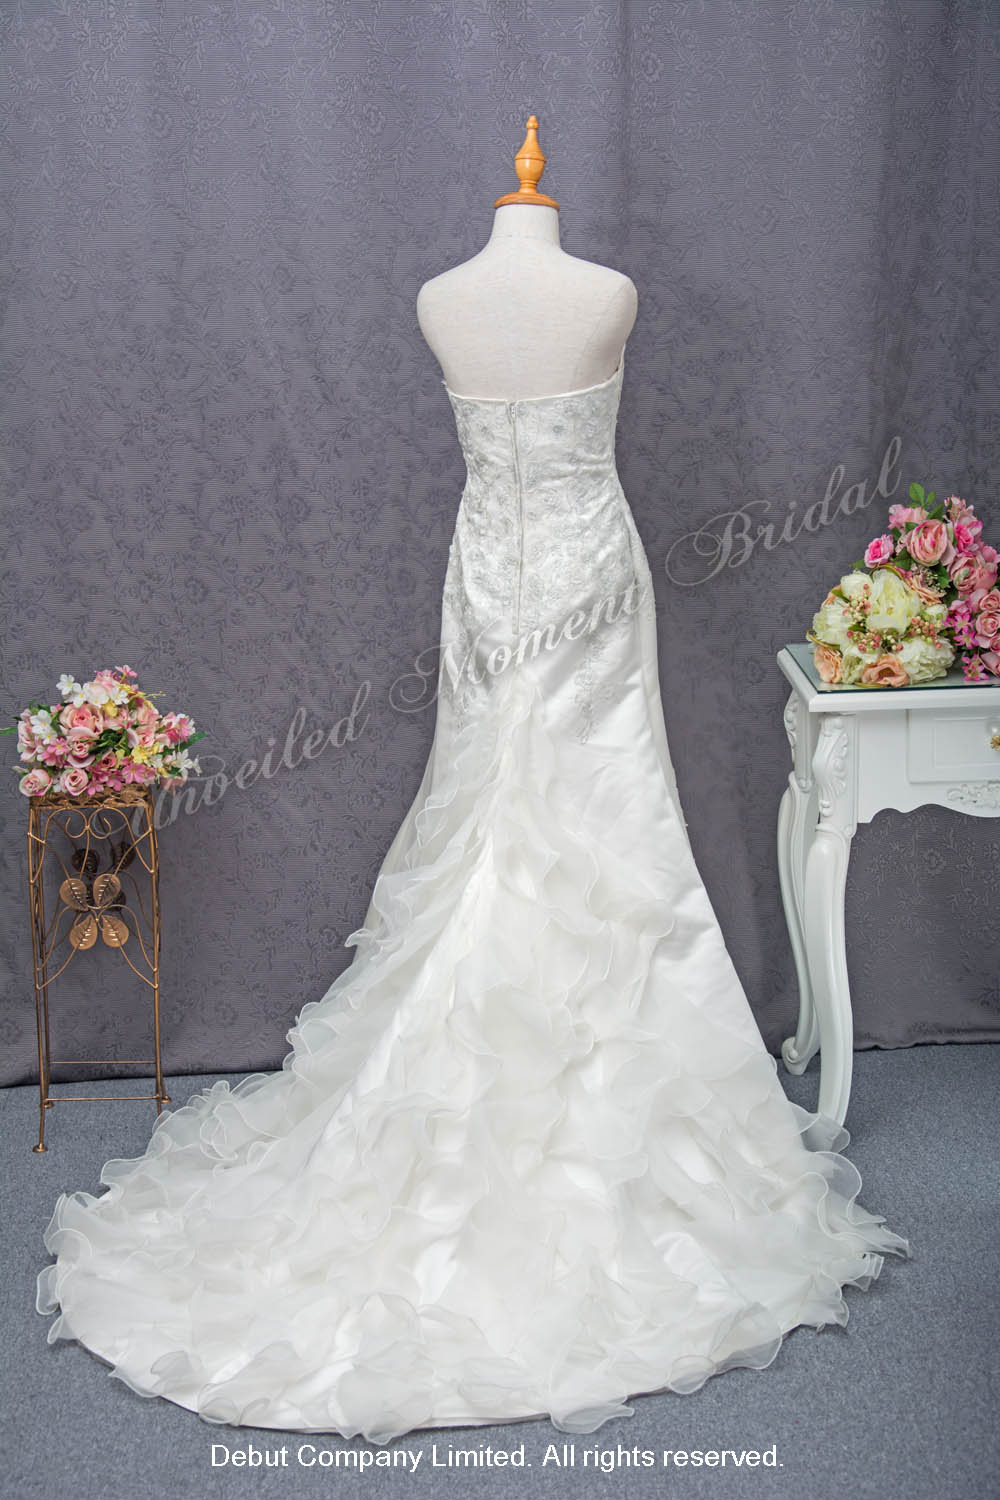 無肩帶low-cut, 蕾絲配飾, 荷葉邊拖尾婚紗 Strapless princess line bridal gown with lace appliques, and a ruffled court-train